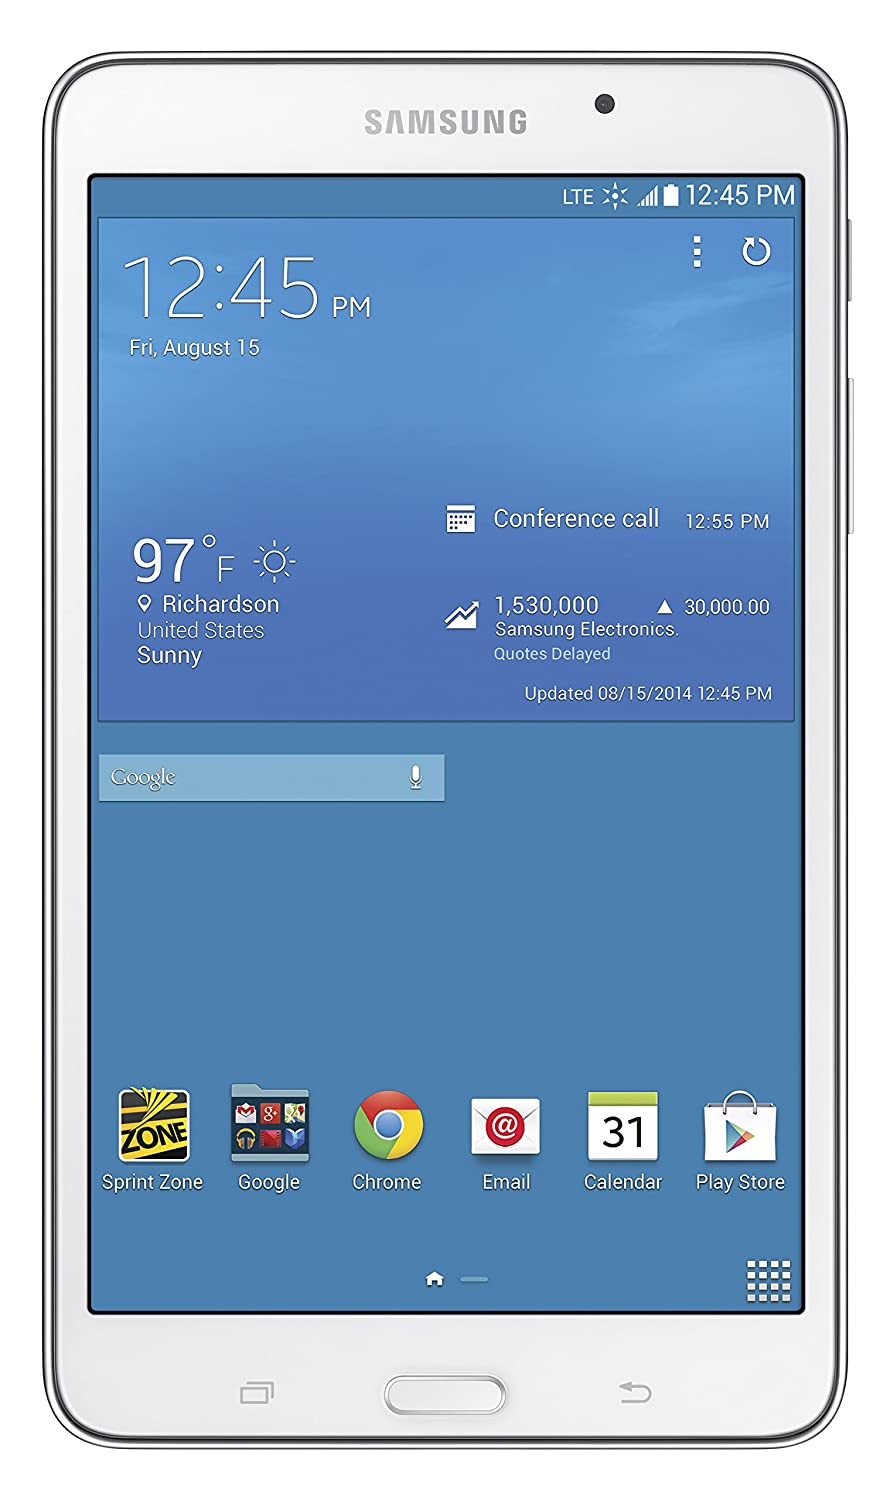 Samsung Galaxy Tab 4 4G LTE Tablet, White 7-Inch 16GB (Sprint)